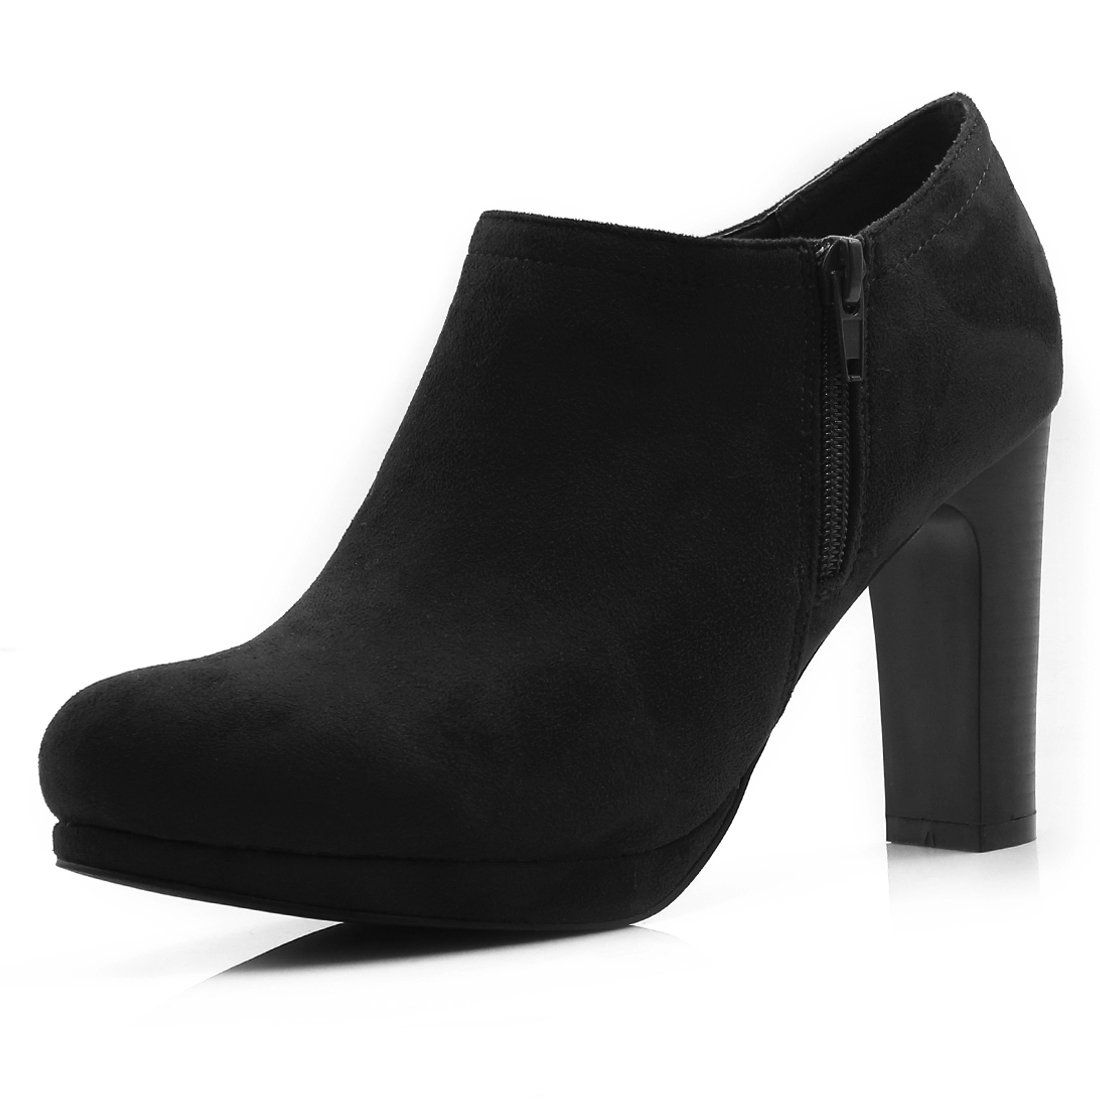 040d4ef2bcf Allegra K Women Round Toe Zipper Side High Heel Ankle Boots Black (Size US 9